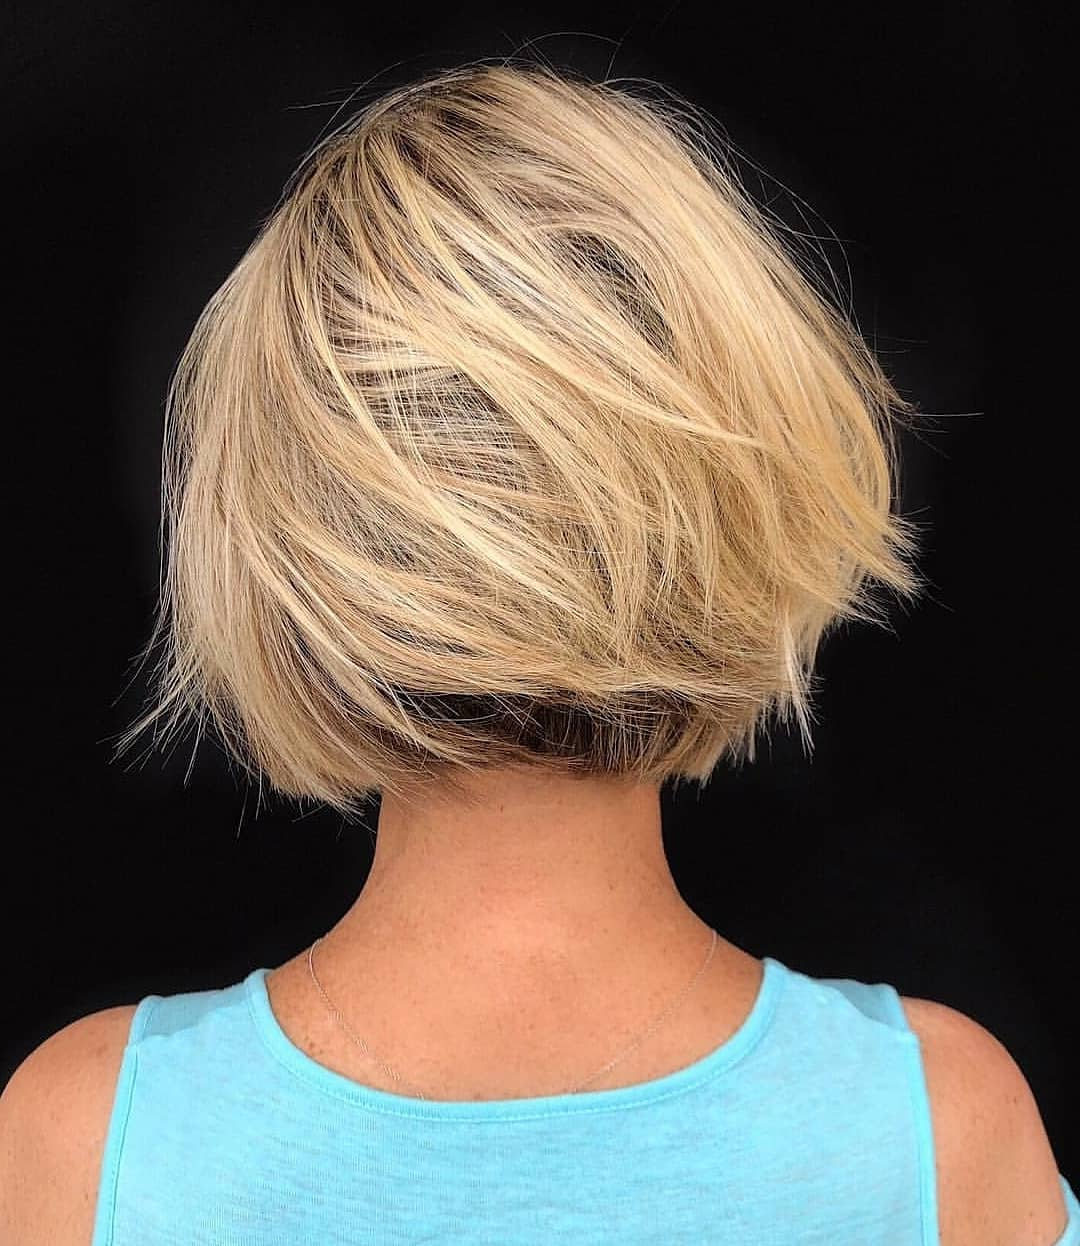 Top 10 Low Maintenance Short Bob Cuts For Thick Hair, Short With Regard To Low Maintenance Short Haircuts For Thick Hair (View 4 of 25)